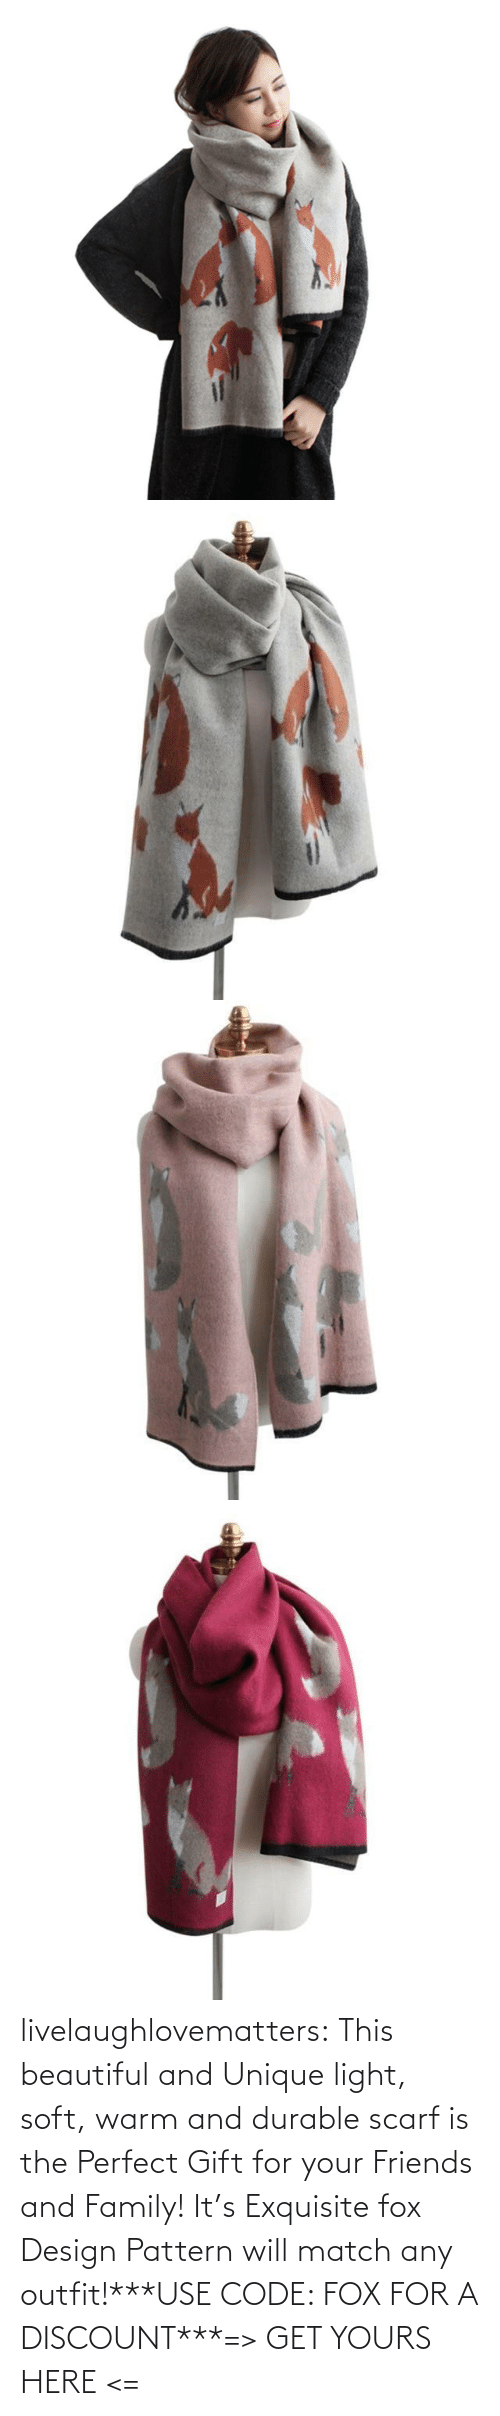 Discount: livelaughlovematters:  This beautiful and Unique light, soft, warm and durable scarf is the Perfect Gift for your Friends and Family! It's Exquisite fox Design Pattern will match any outfit!***USE CODE: FOX FOR A DISCOUNT***=> GET YOURS HERE <=